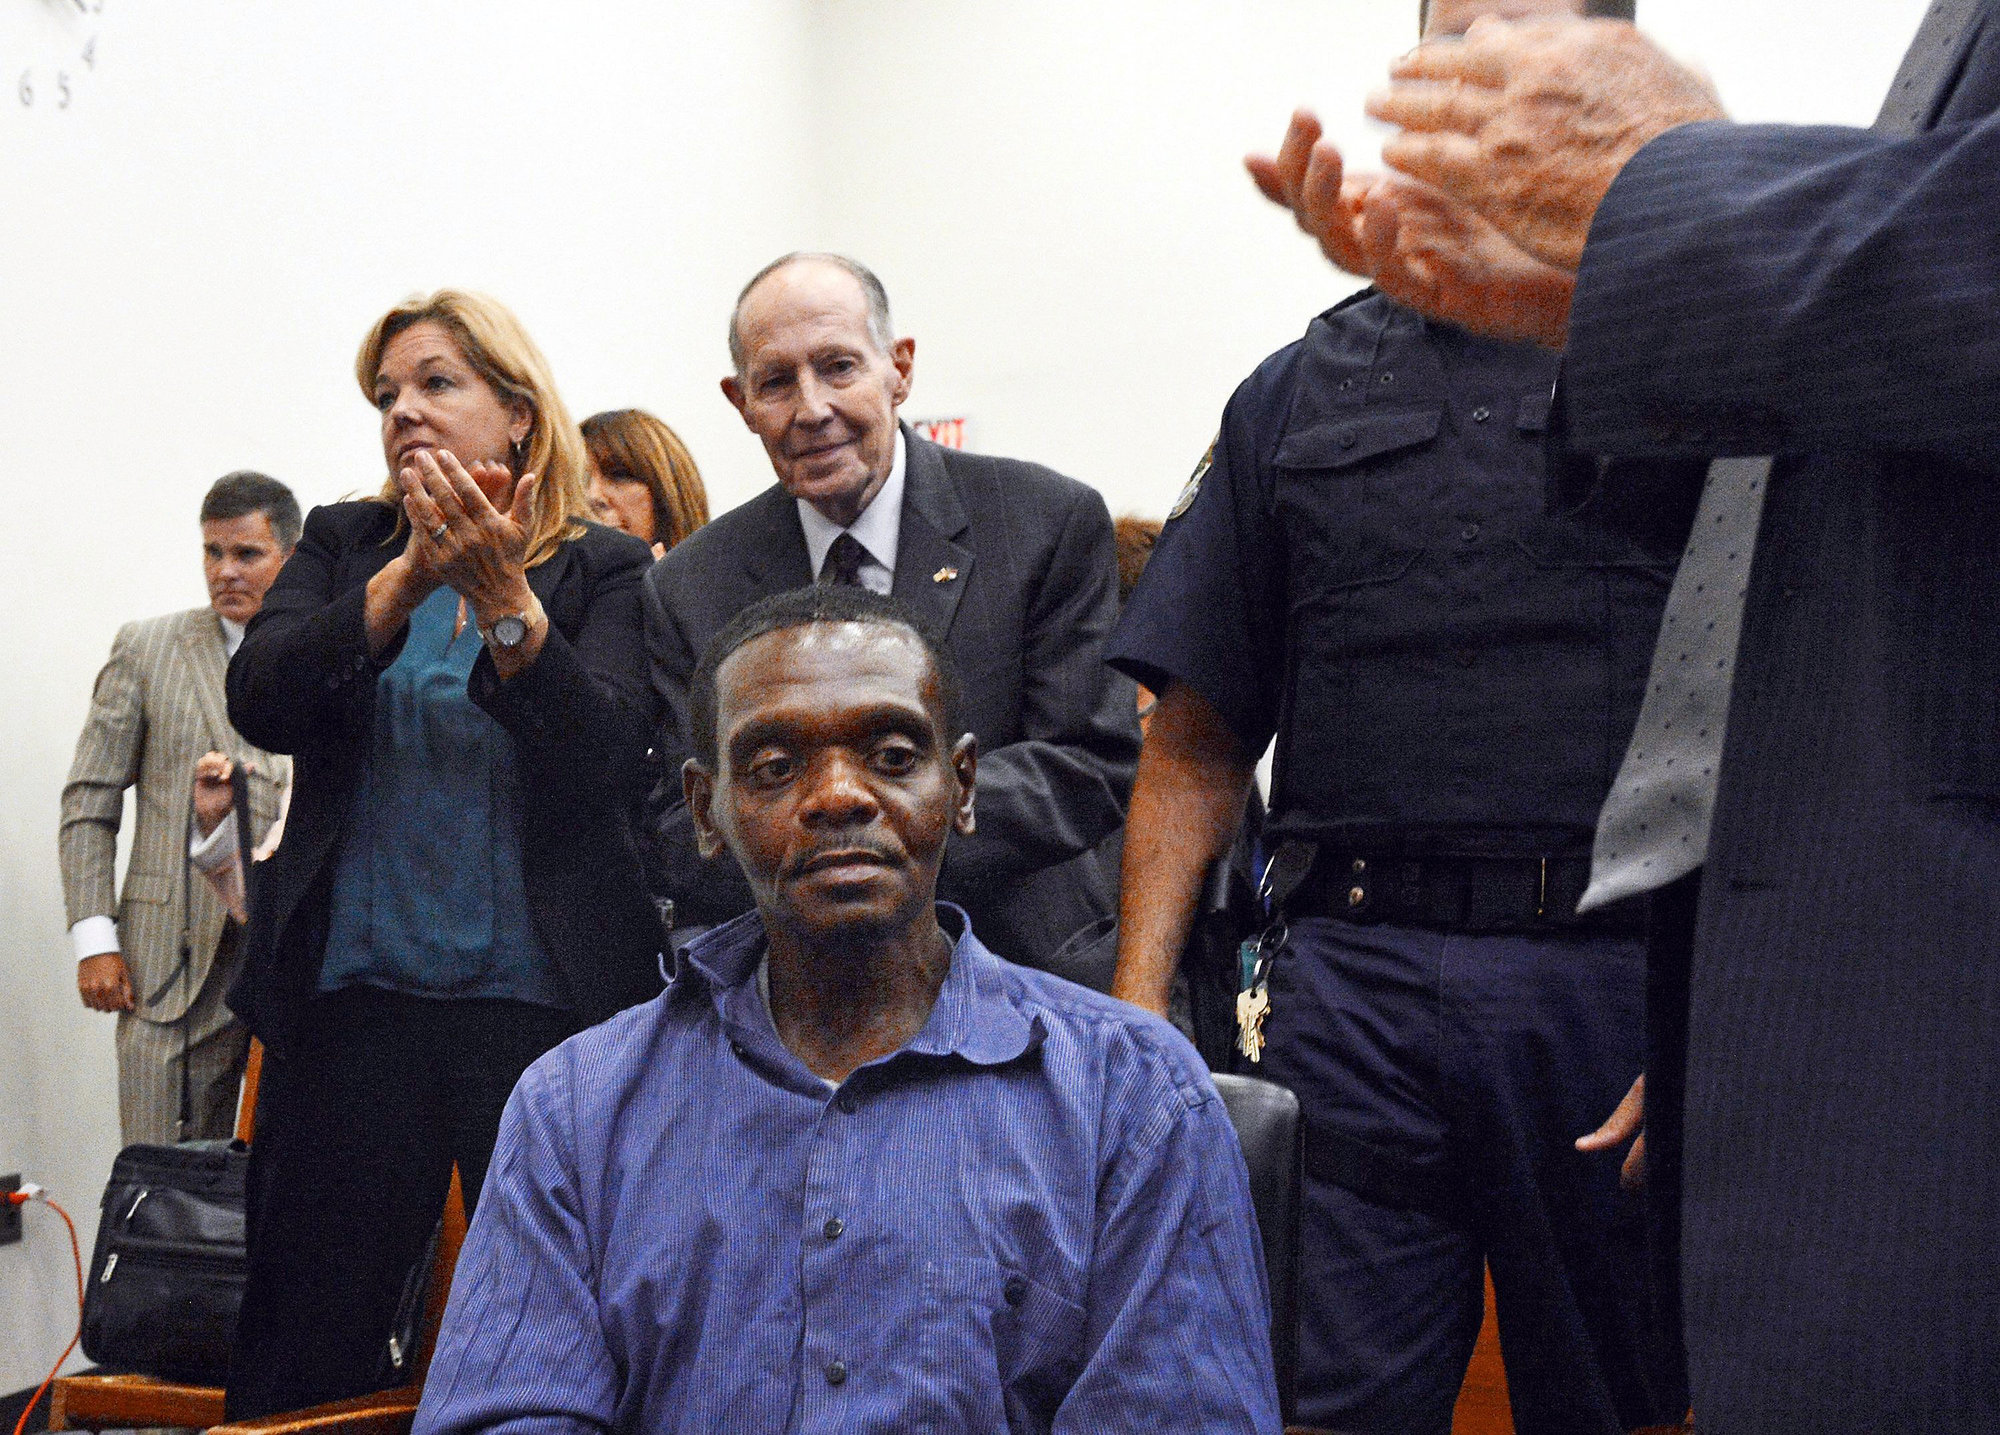 'Bev' Lake, Jr., center, stands behind Henry McCollum after a judge declared McCollum innocent of murder in September 2014. McCollum was exonerated through the innocence inquiry commission that Lake created.